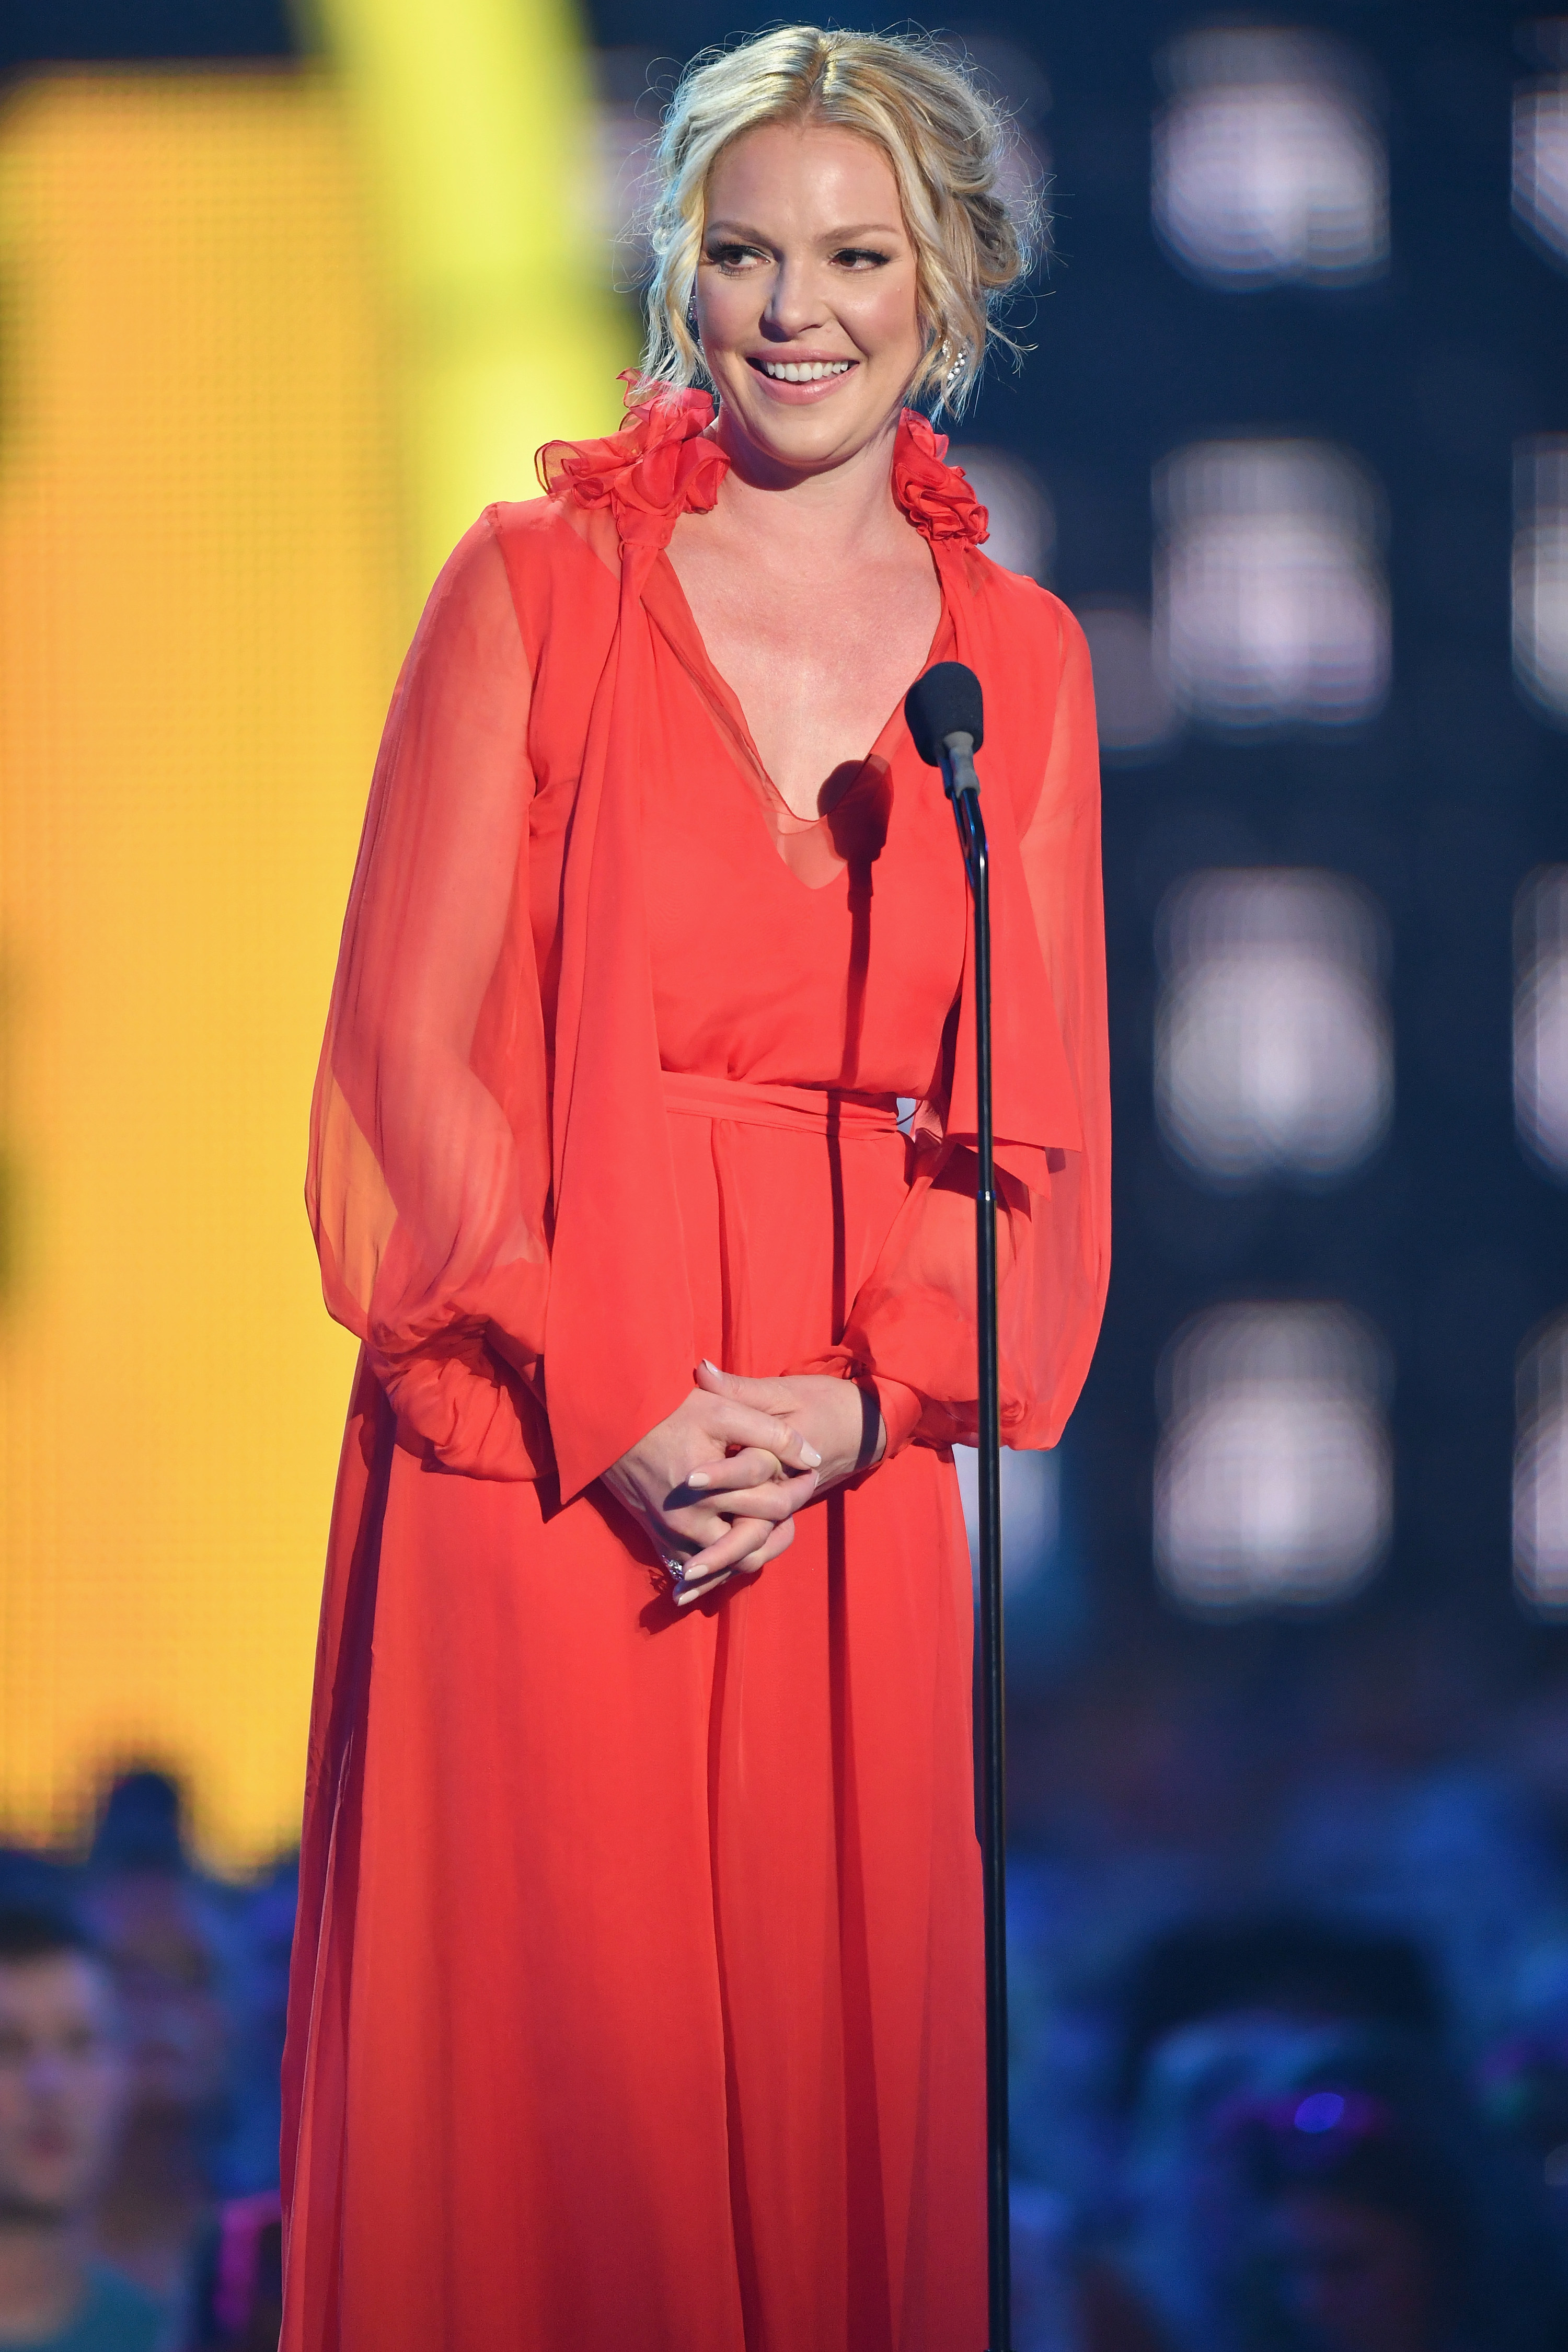 Heigl presenting an award at the 2017 CMT Music Awards